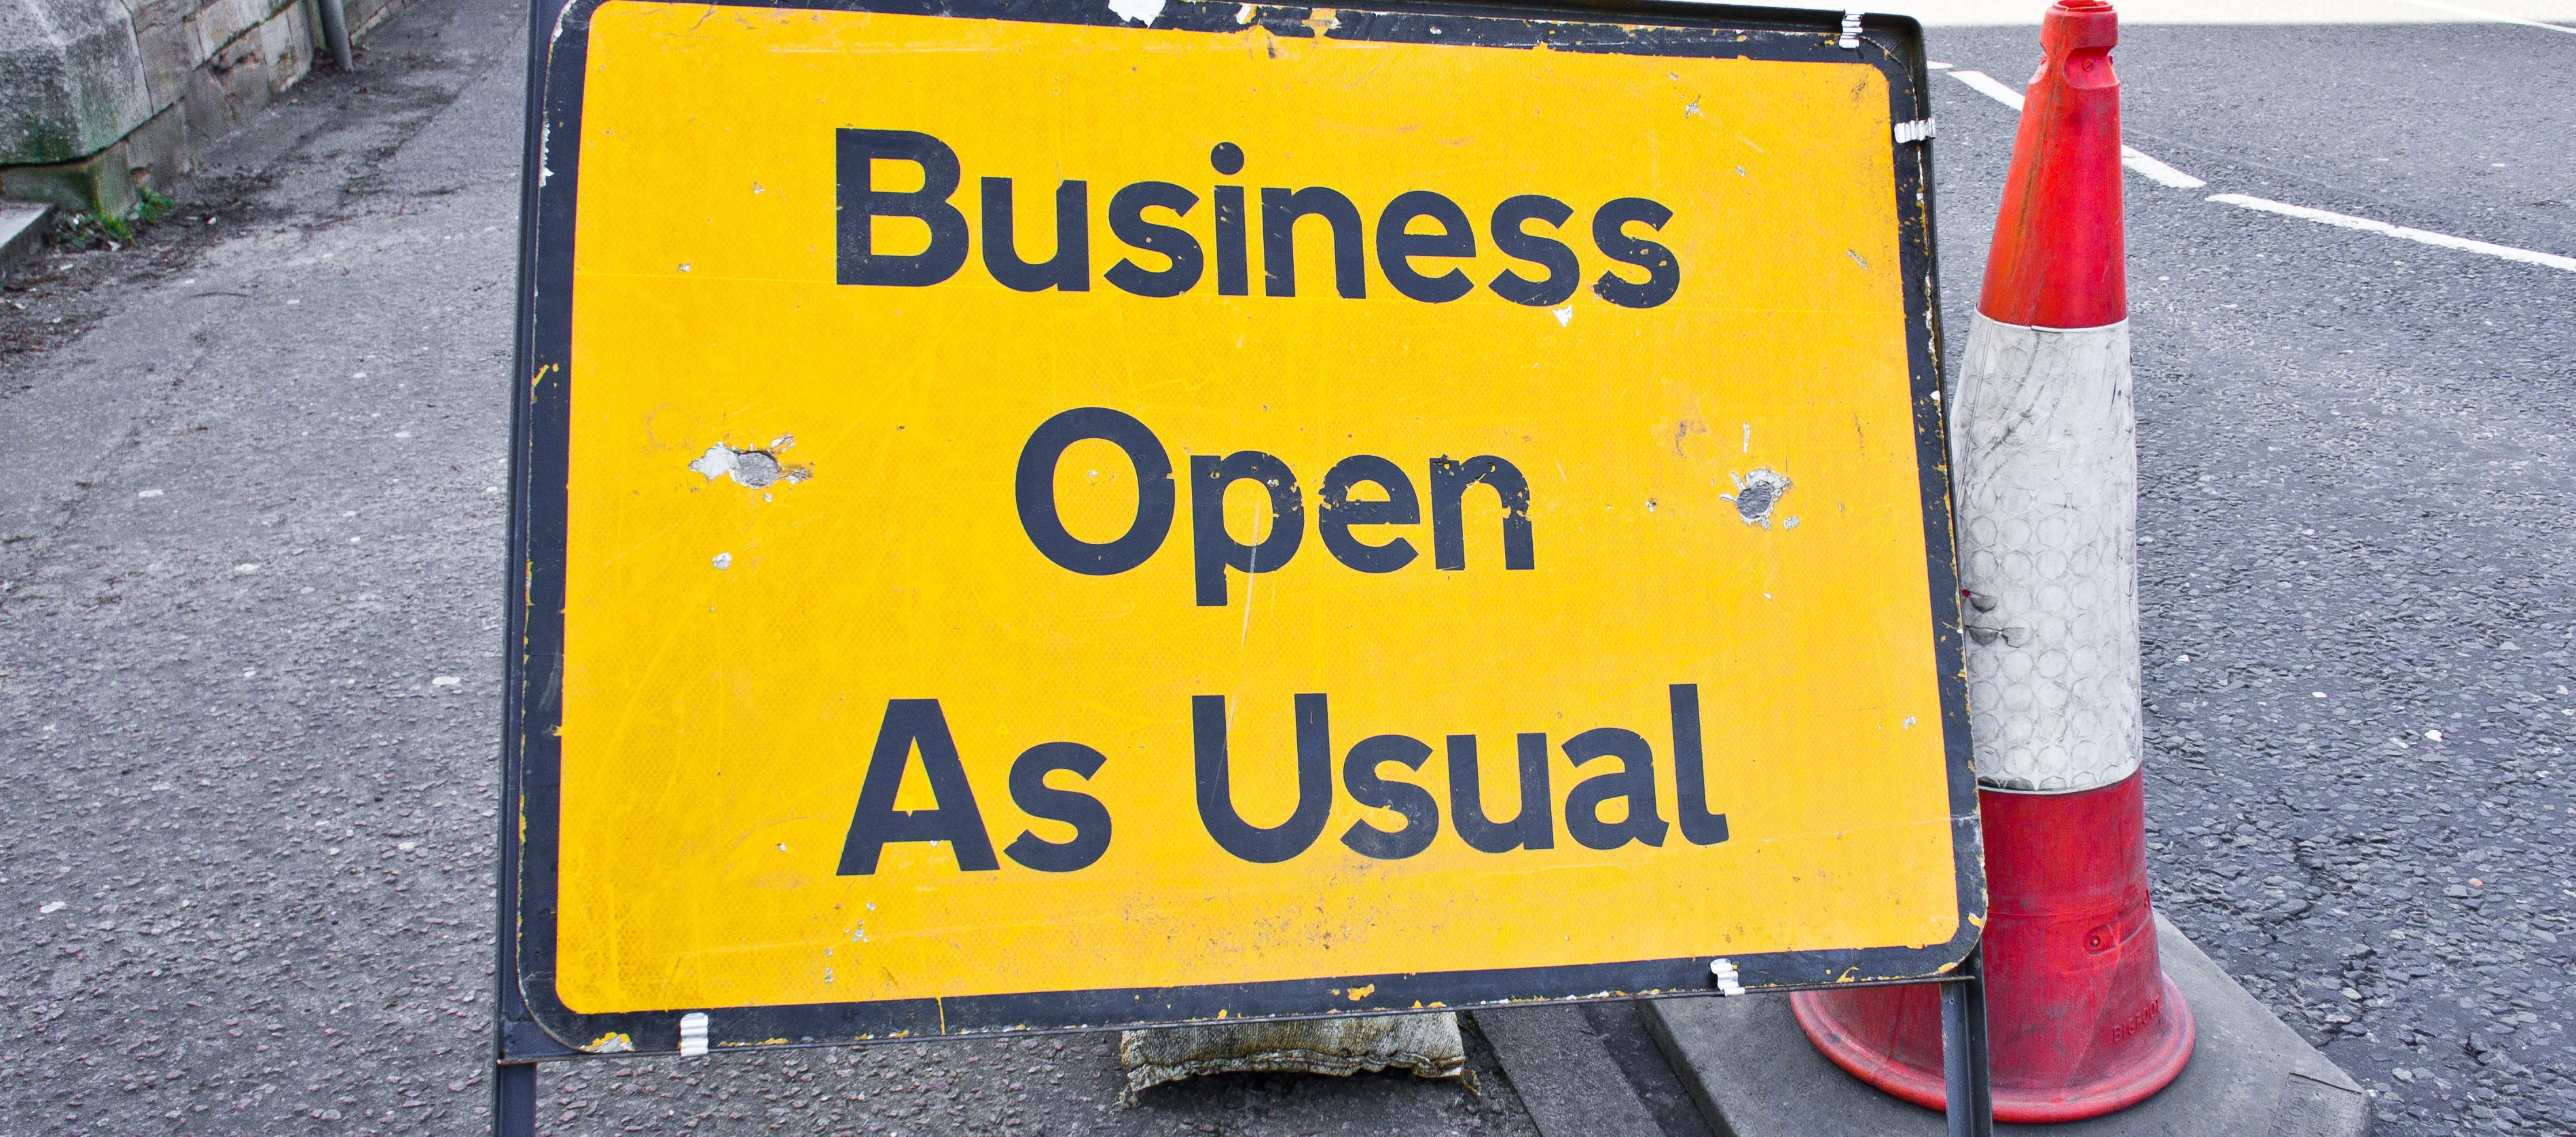 Business as usual sign (Shutterstock/Tom Gowanlock)